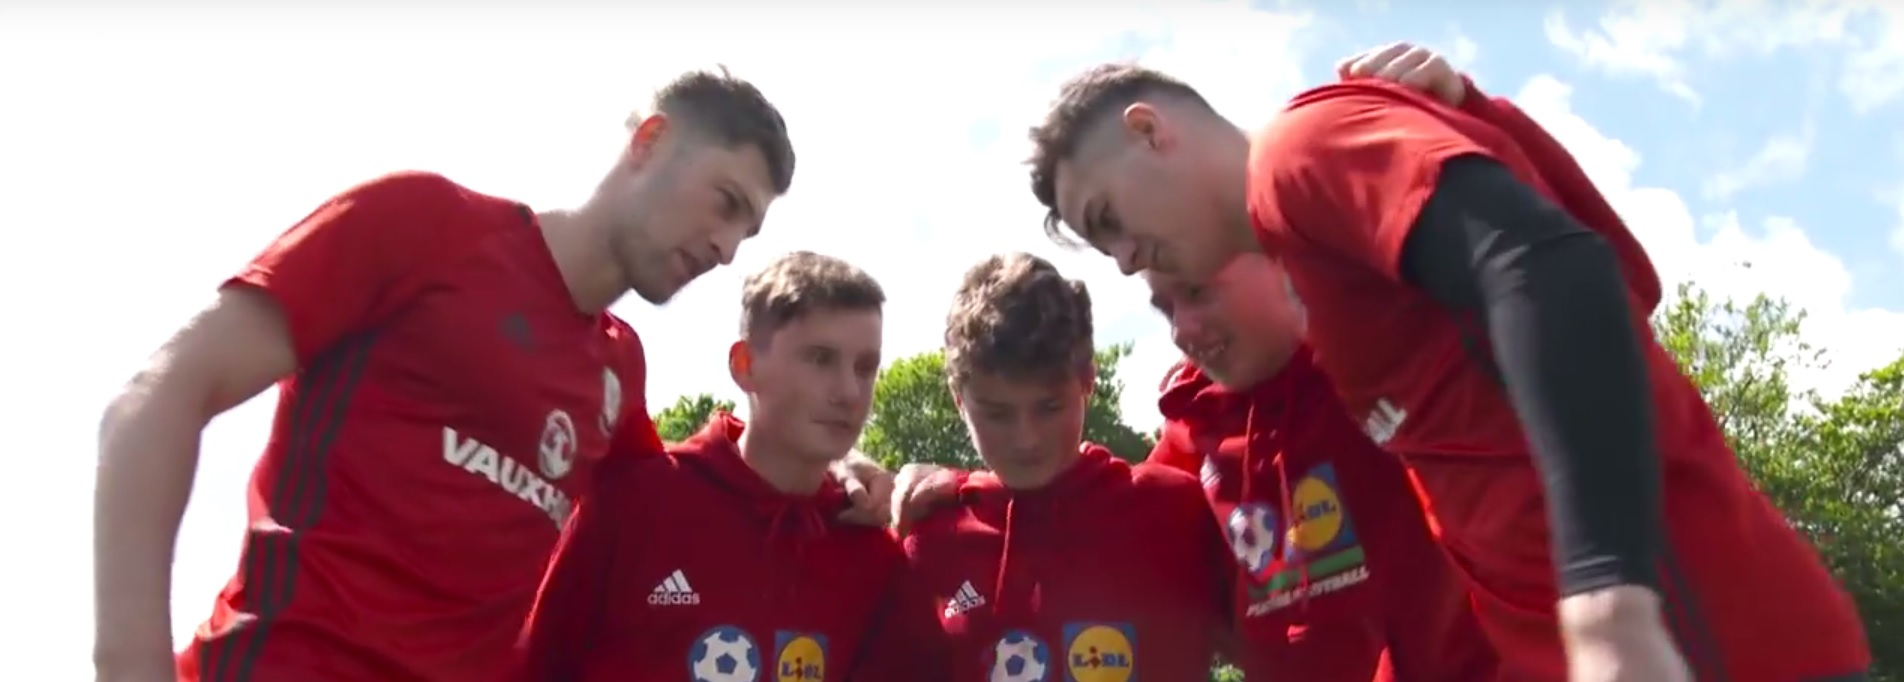 Wales stars get into Wimbledon spirit as Lidl launch Football Tennis